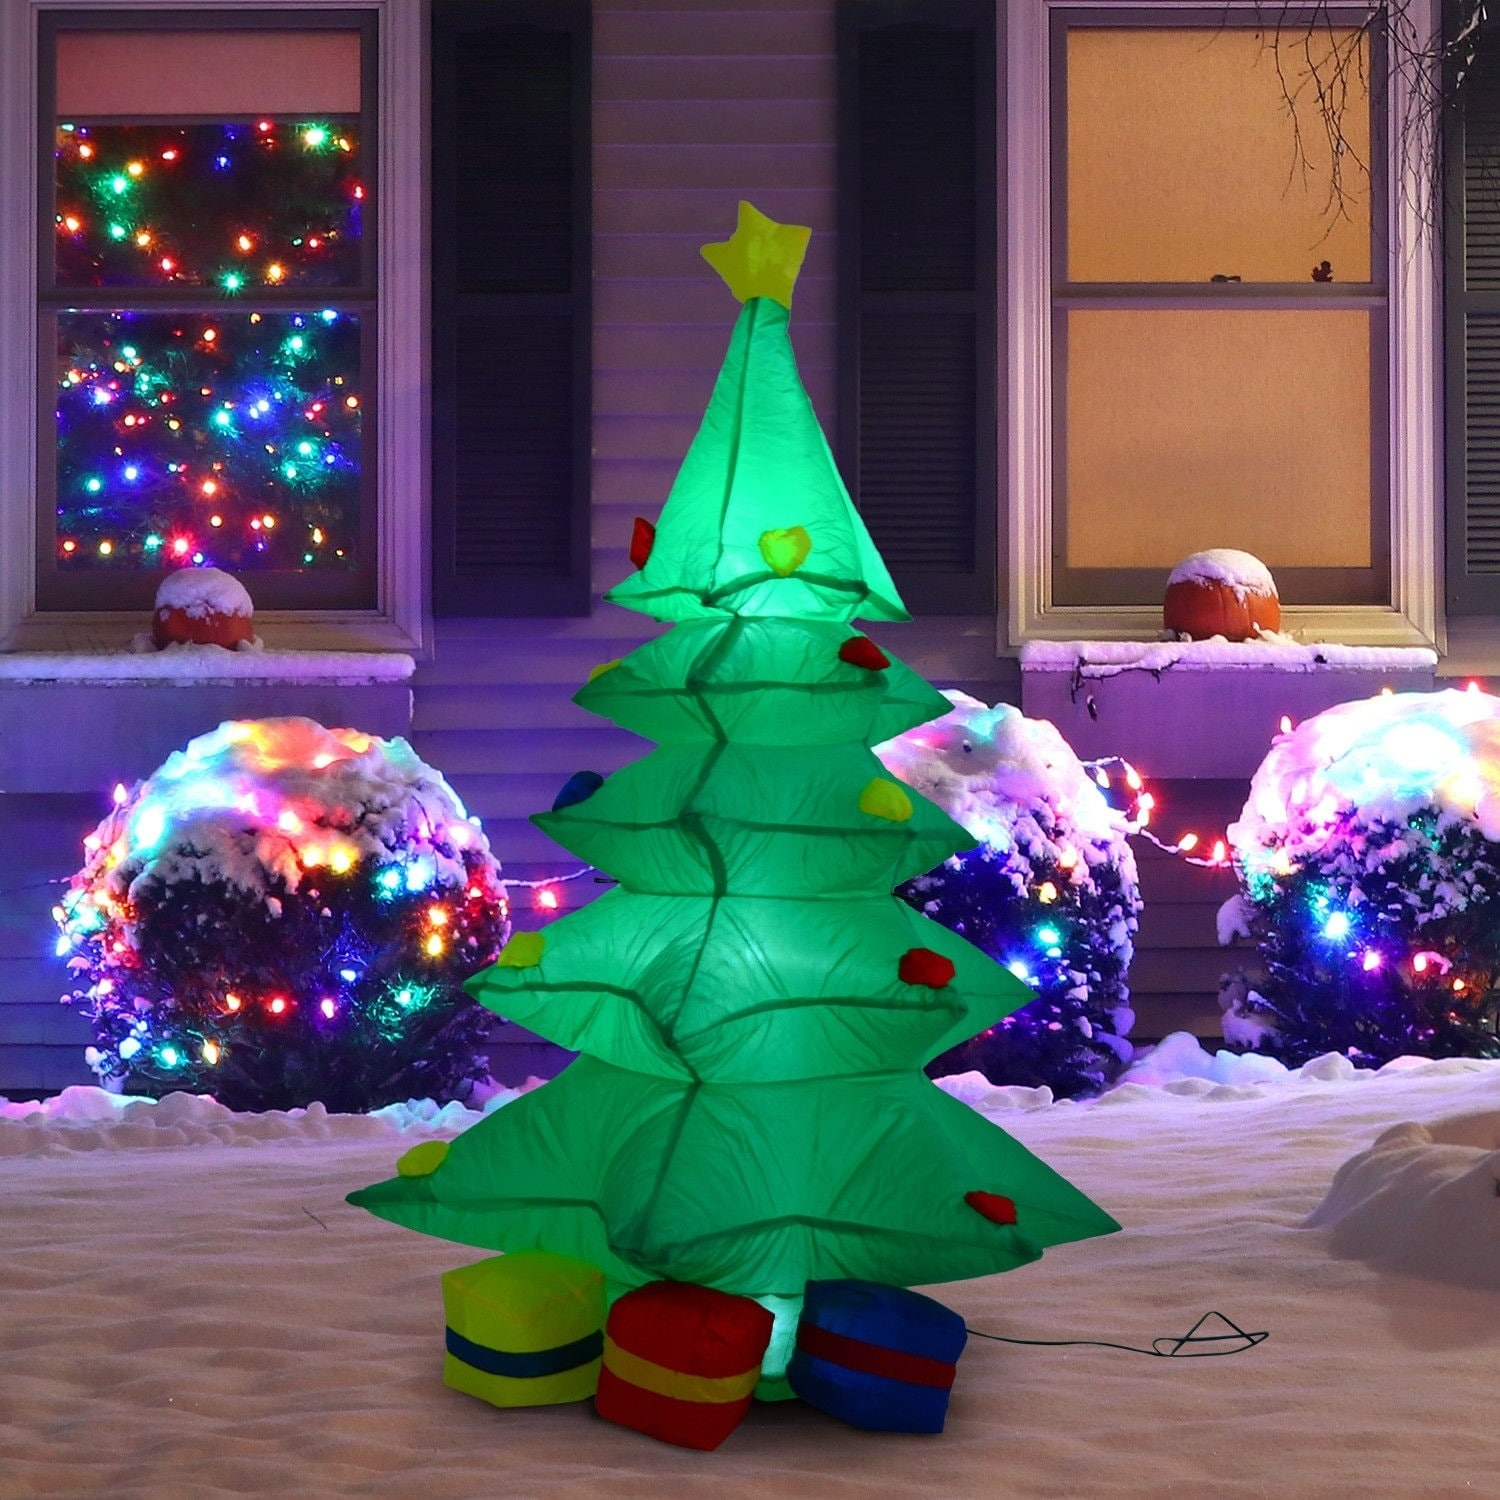 homcom 4 ft tall outdoor lighted airblown inflatable christmas lawn decoration - Lighted Christmas Lawn Decorations